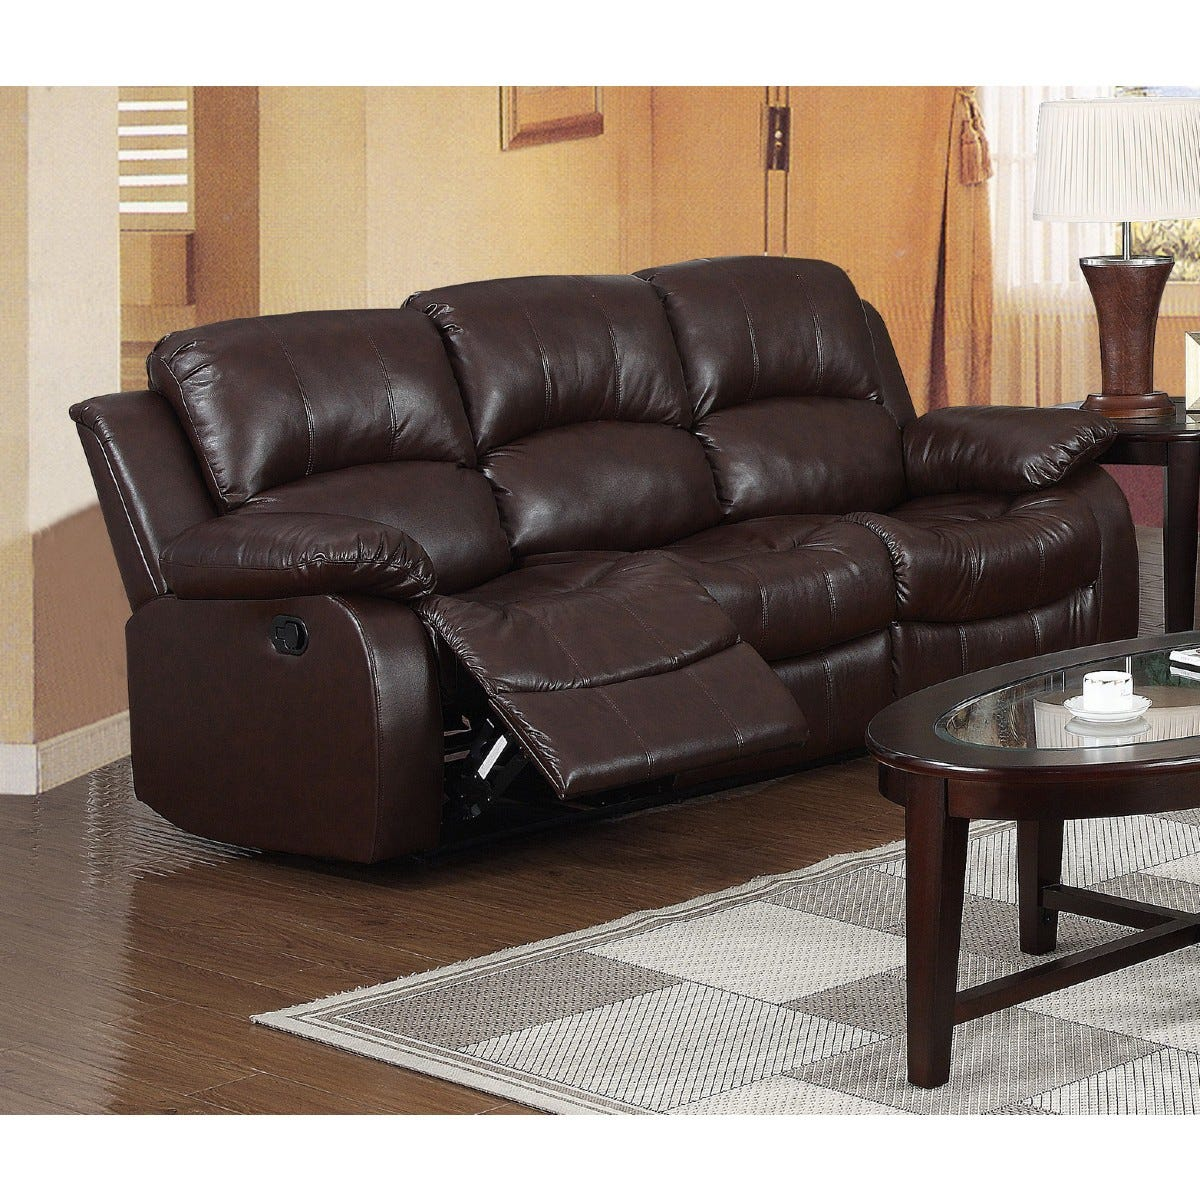 Clare Faux Leather 3 Seater Reclining Sofa Brown